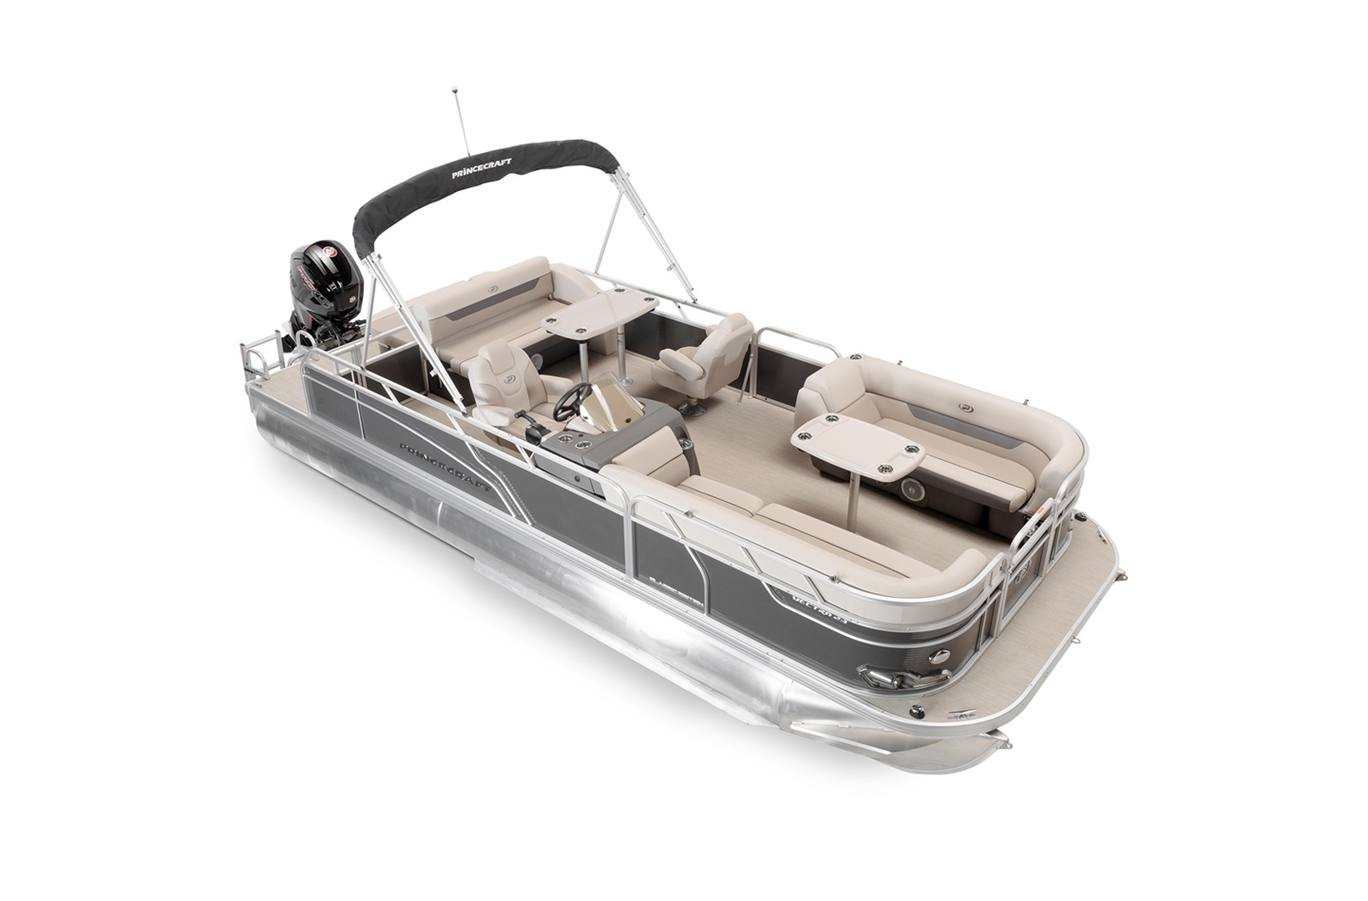 2019 Princecraft Vectra 23 RL for sale in Harrison Township